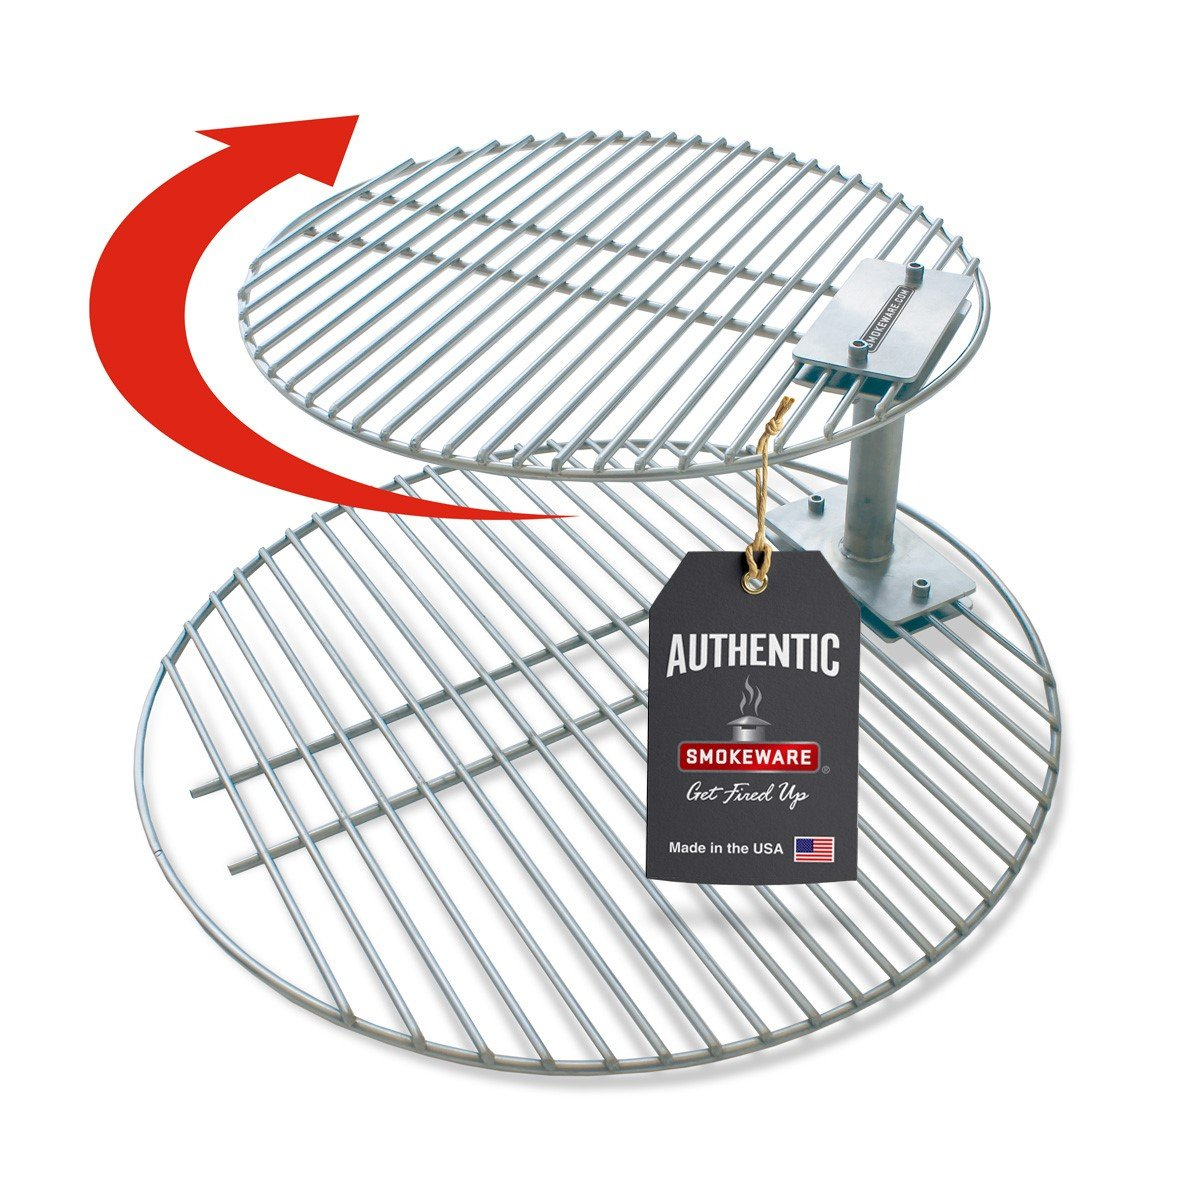 SmokeWare Stacker & Grill Grate Combo (Top Grate and Stacker Only) - Compatible with Large Big Green Eggs, Stainless Steel Grill Accessories by SmokeWare